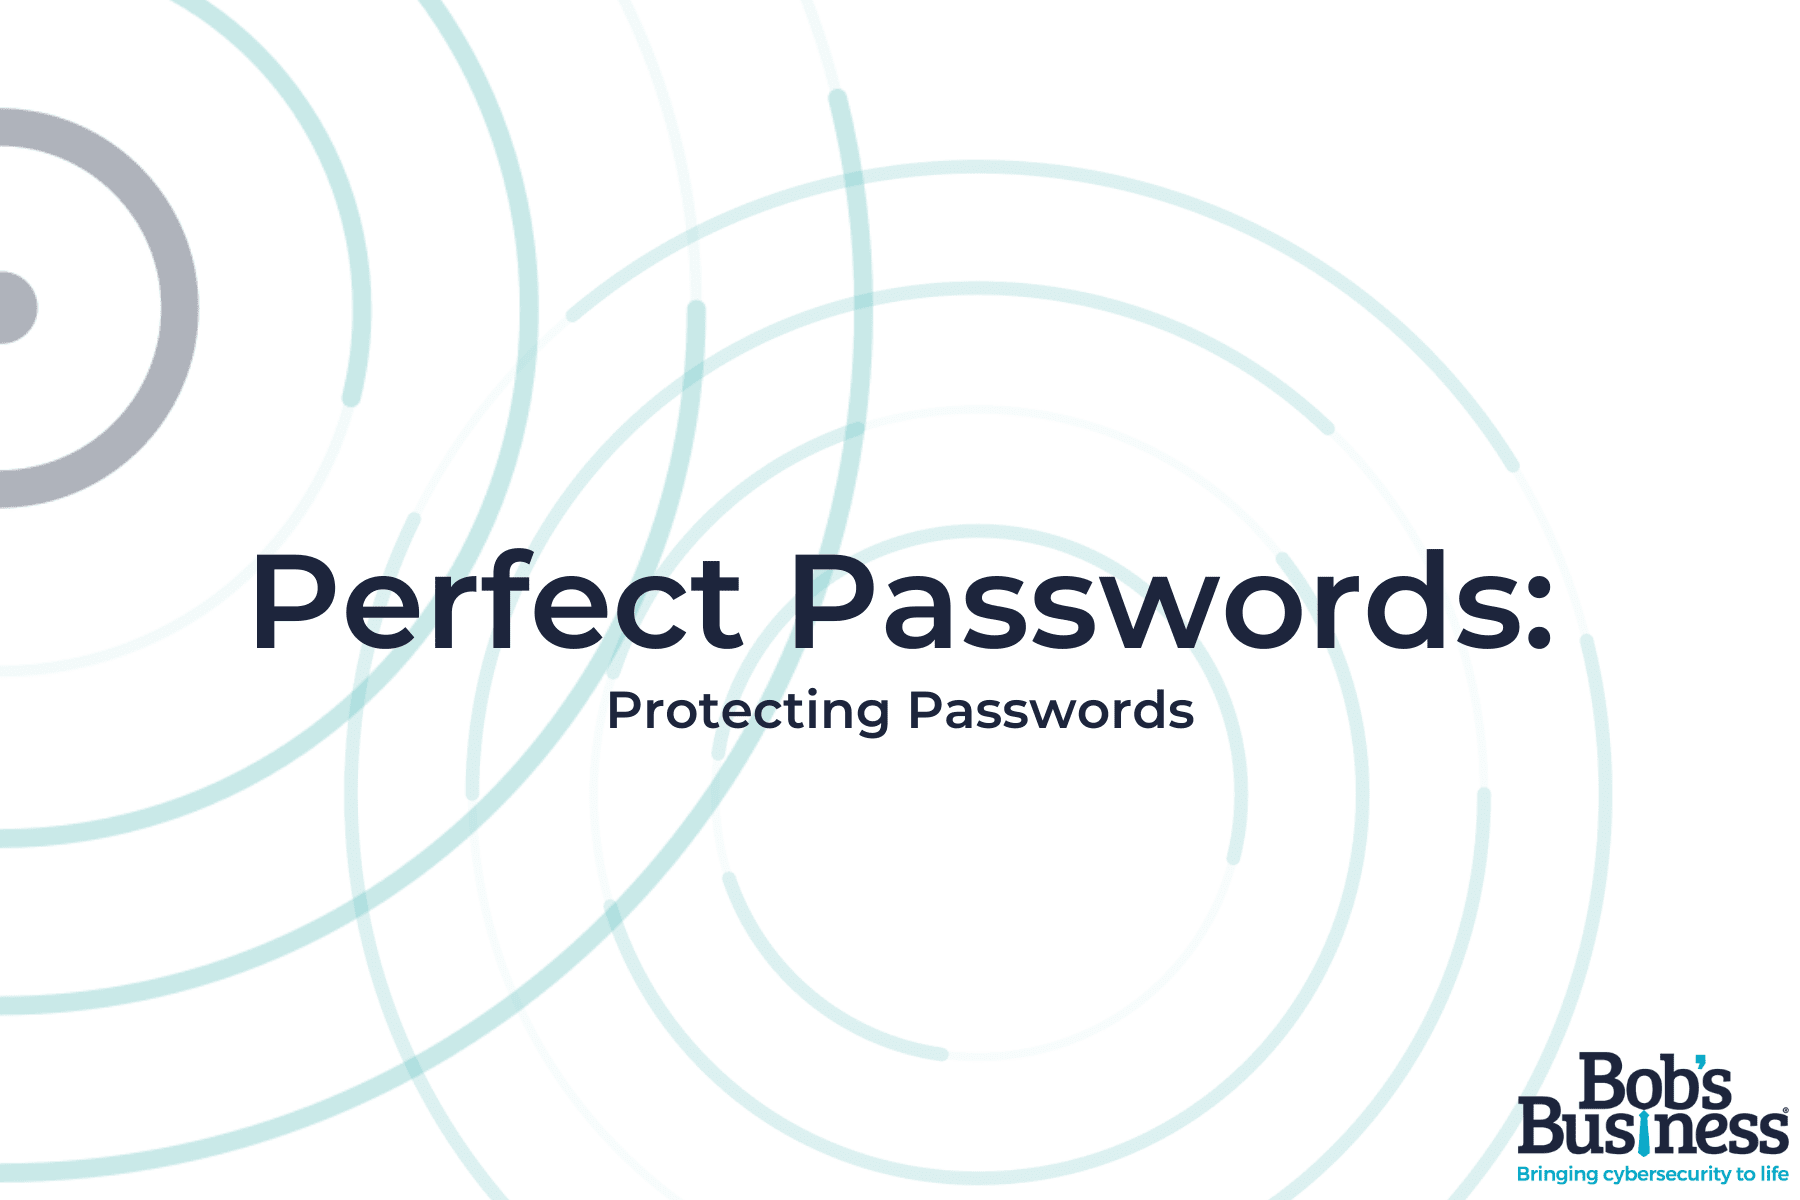 Protecting Passwords course